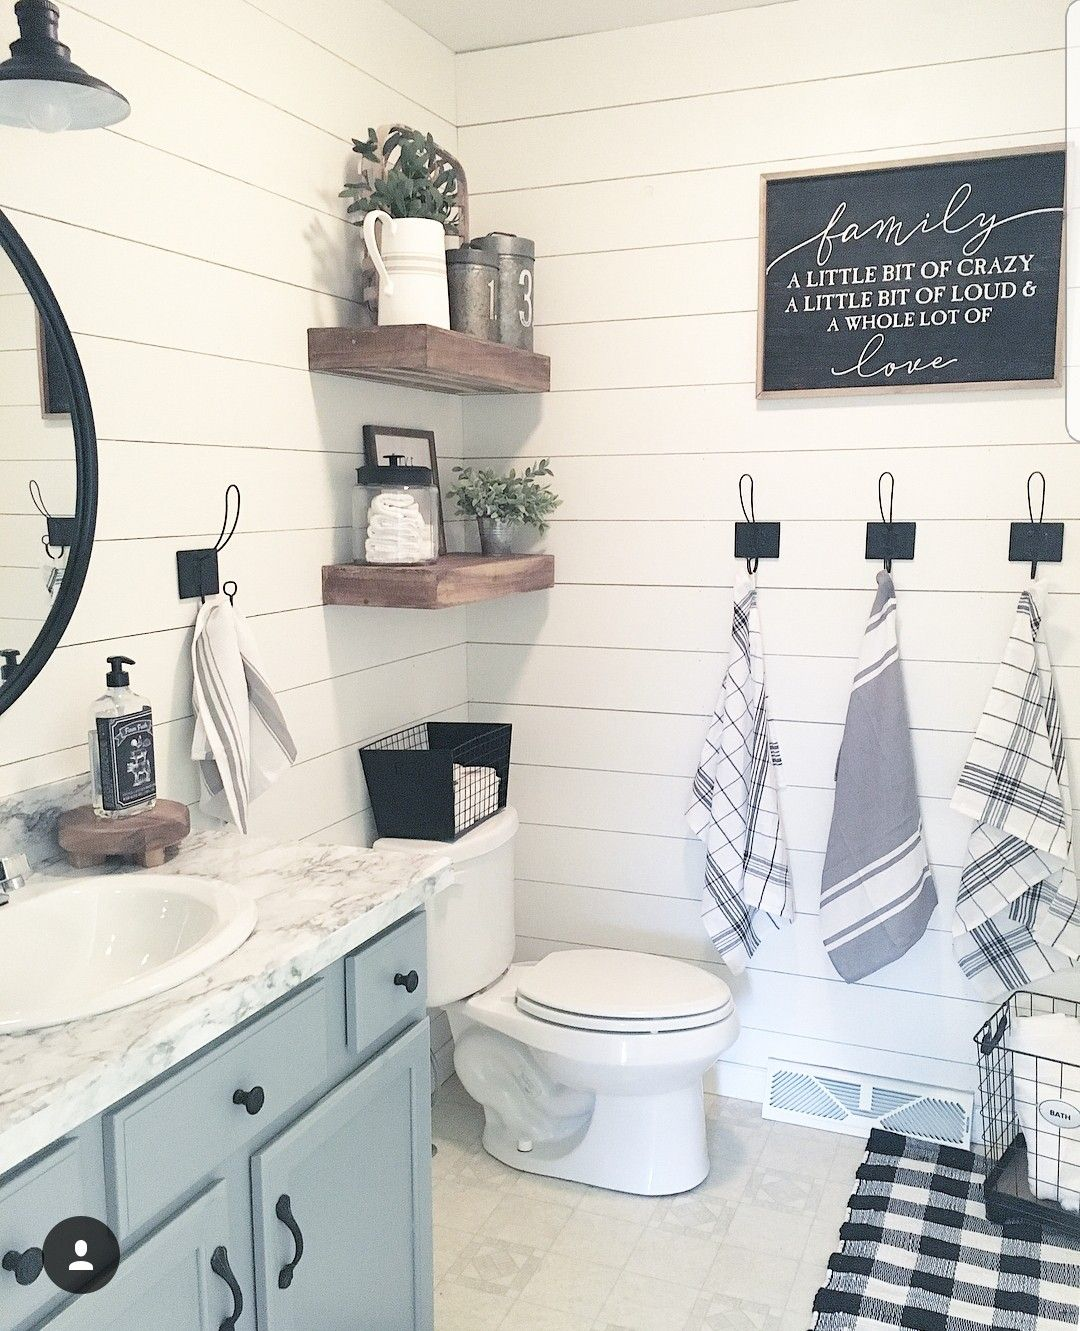 Https Www Instagram Com P Blnol Gfh8e Utm Source Ig Share Sheet Igshid 1iczlnx6typwo Farmhouse Bathroom Decor Bathroom Decor Modern Farmhouse Bathroom